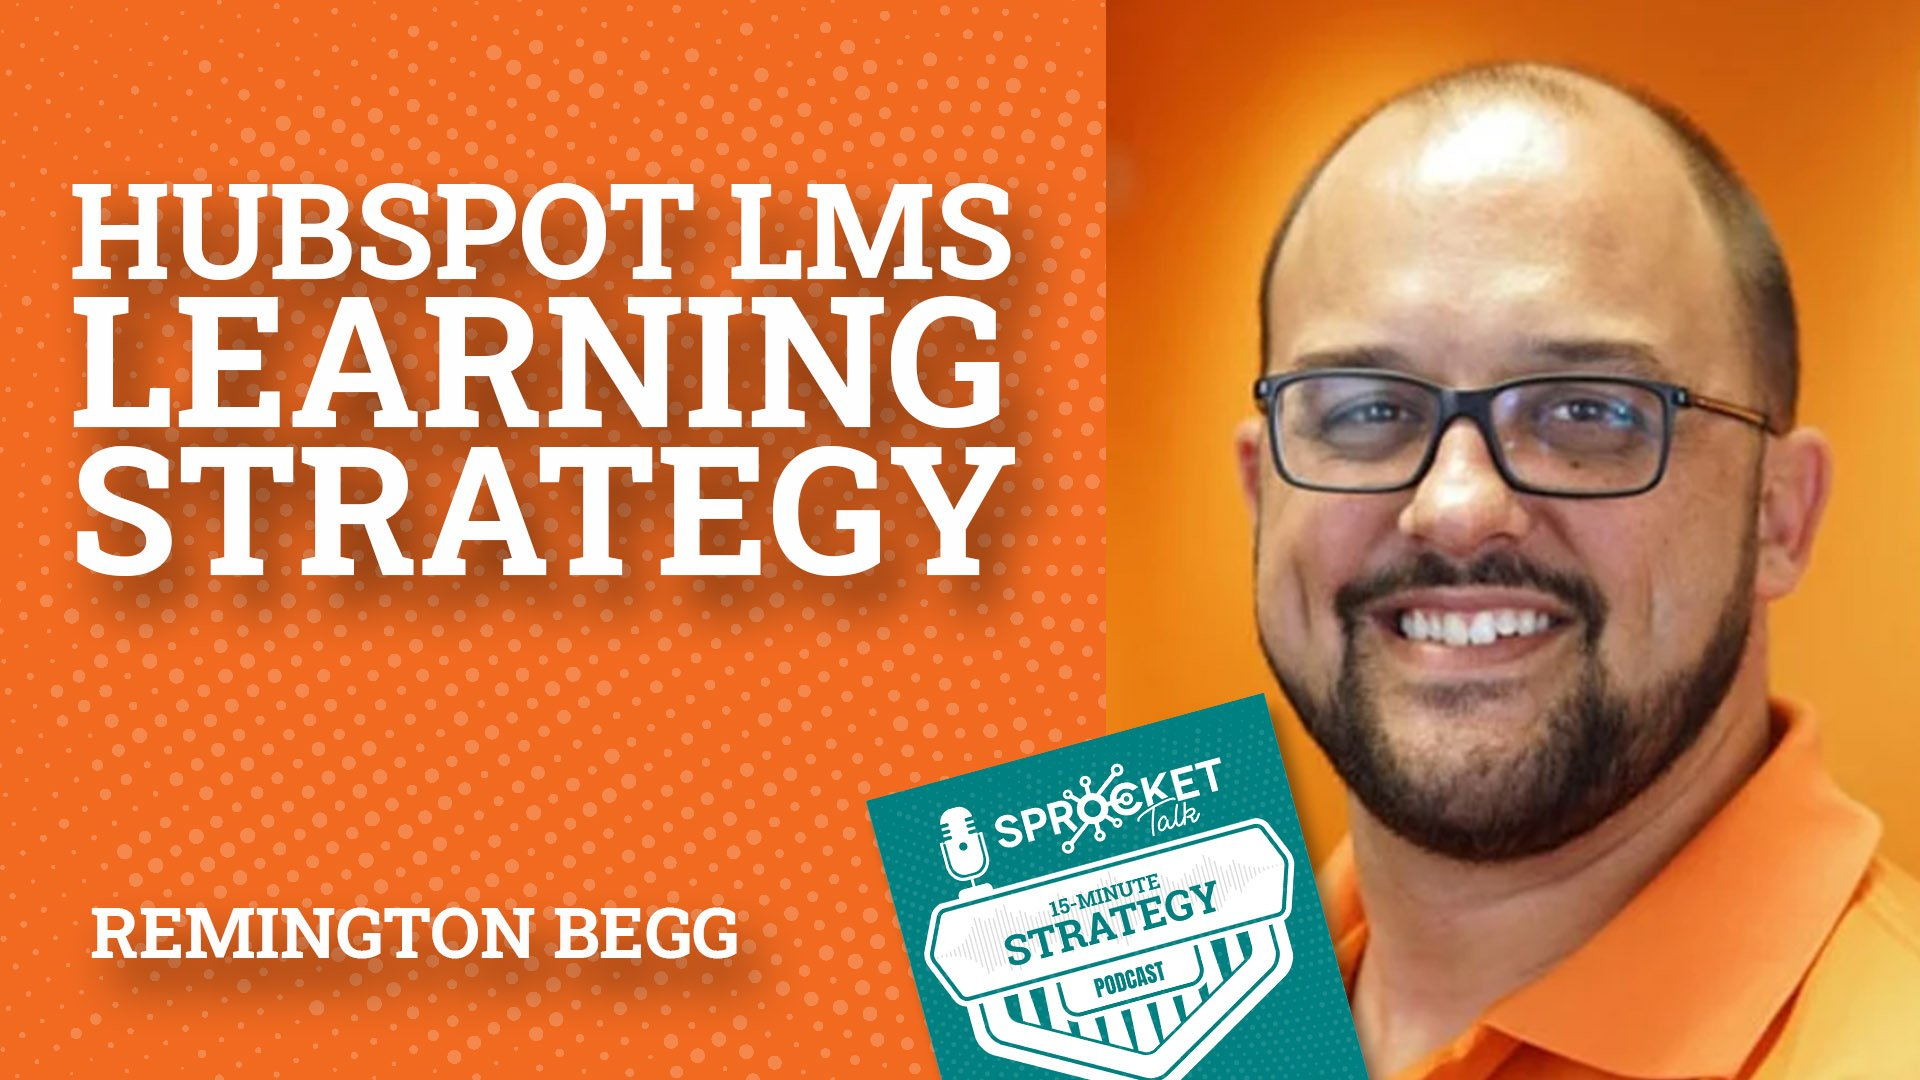 Learning Management System Strategy - HubSpot LMS [HubLMS.io]